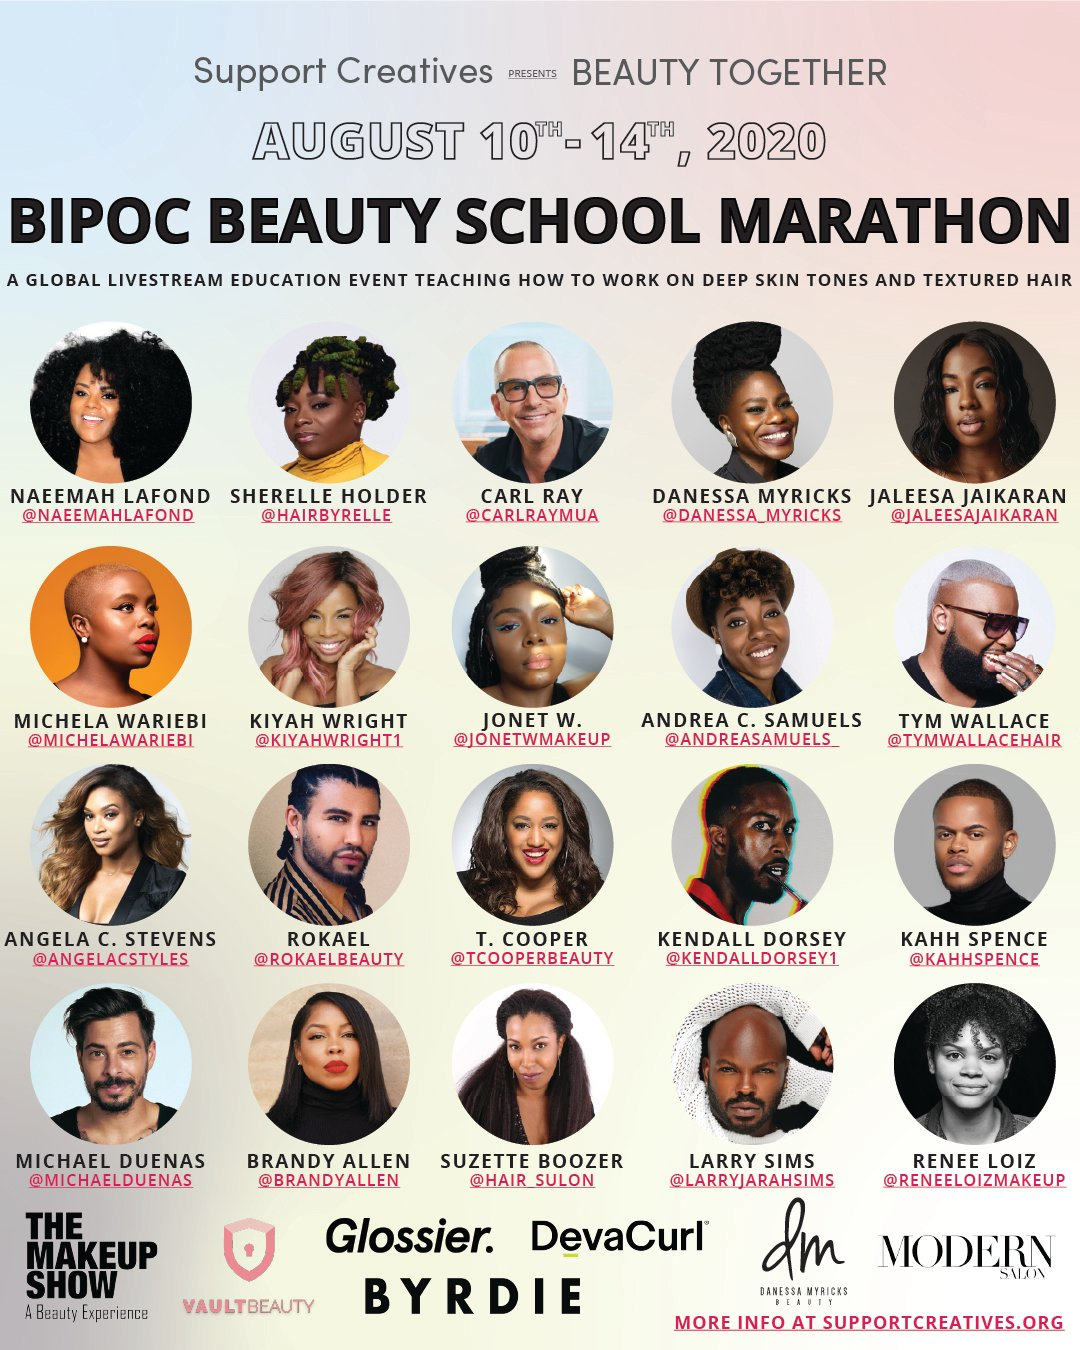 Support Creatives Announces Live Education with Celebrity Artists on Working with Deep Skin Tones, Textured Hair